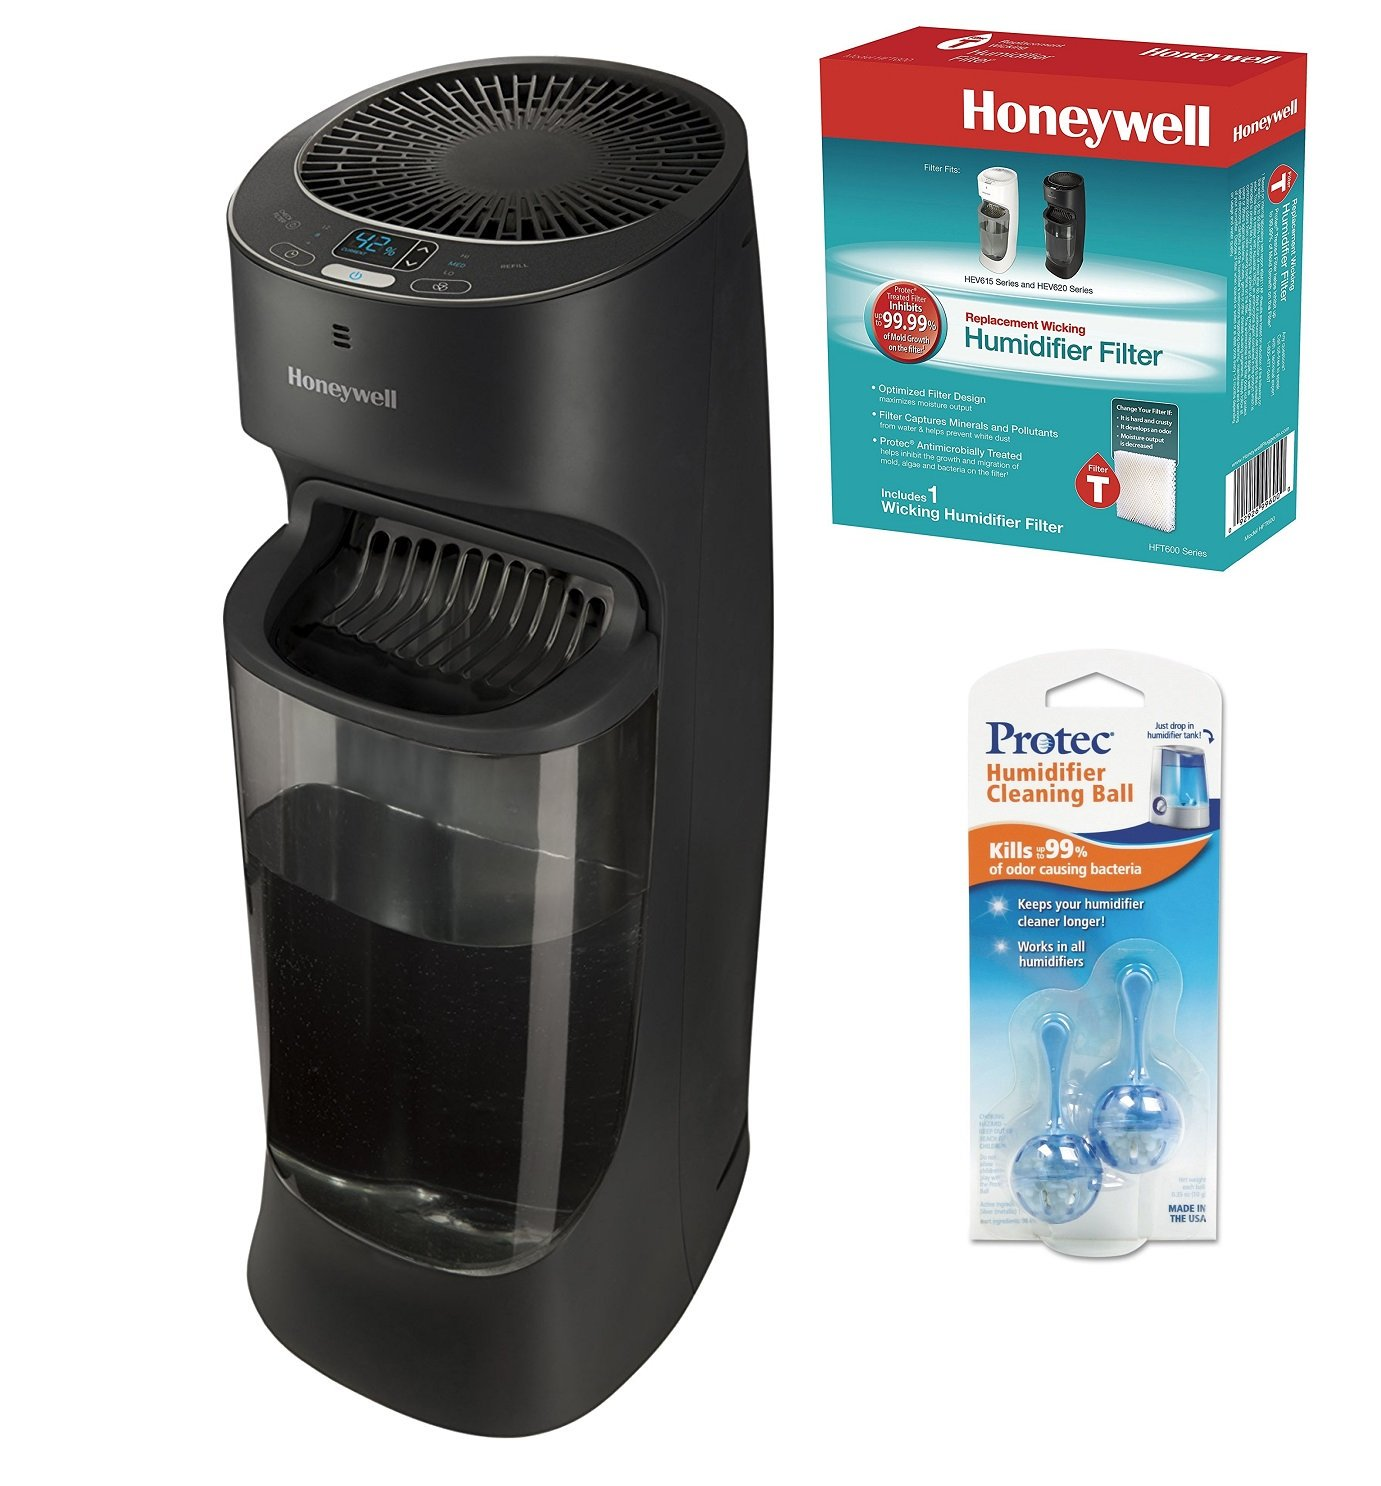 Honeywell HEV620B Top Fill Tower Humidifier with Digital Humidistat, Black W/ Extra Filter and ProTec Cleaning Cartridges